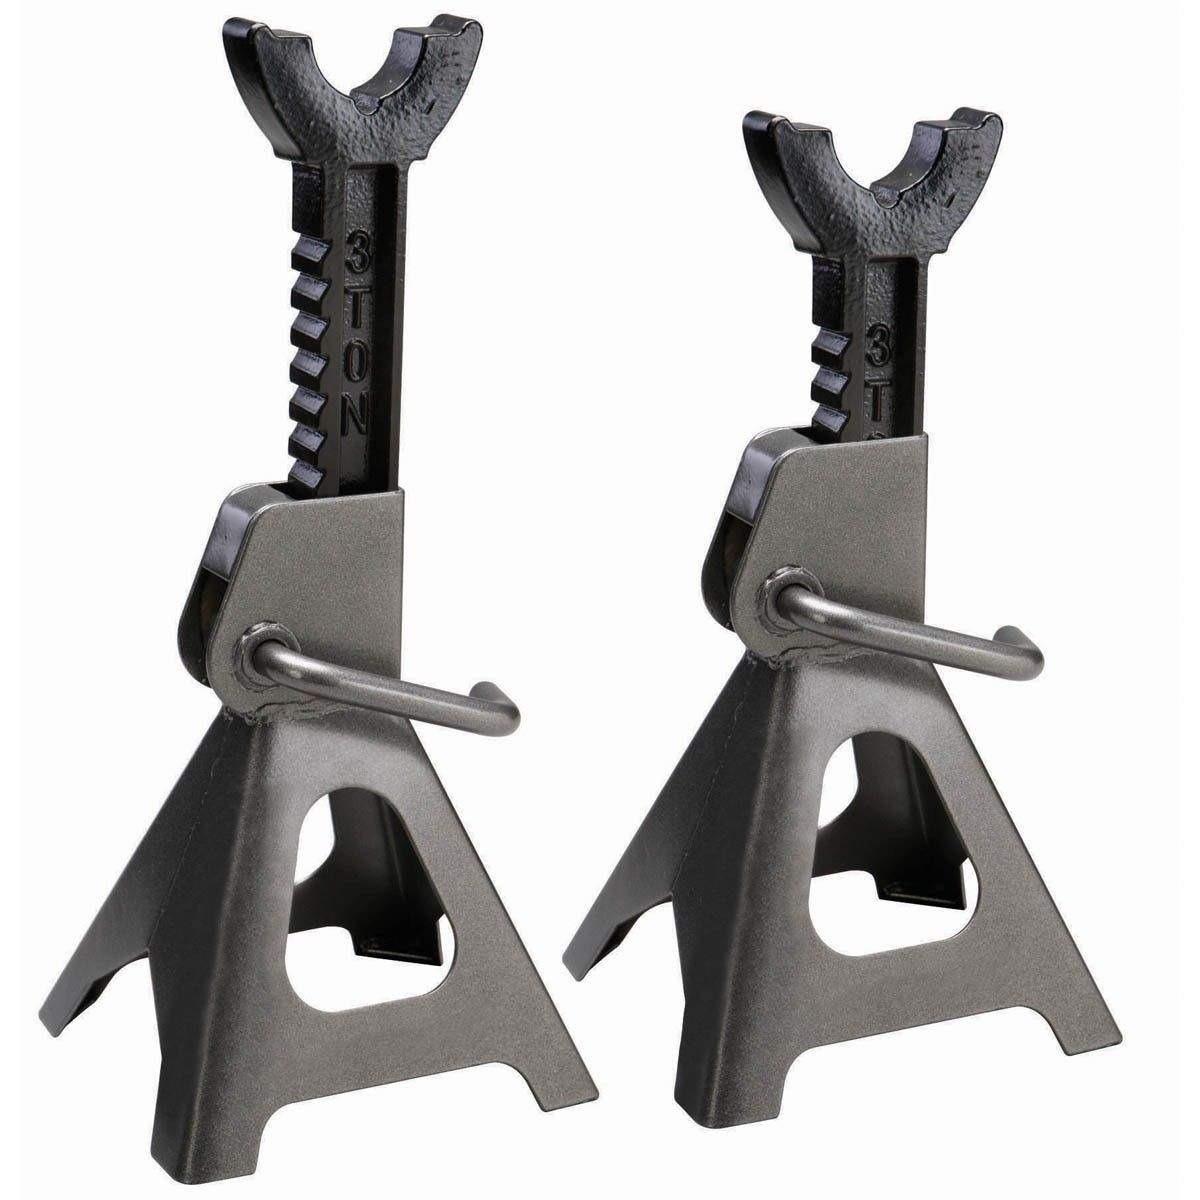 New Set of 2 Jack Stands 3 Ton Heavy Duty